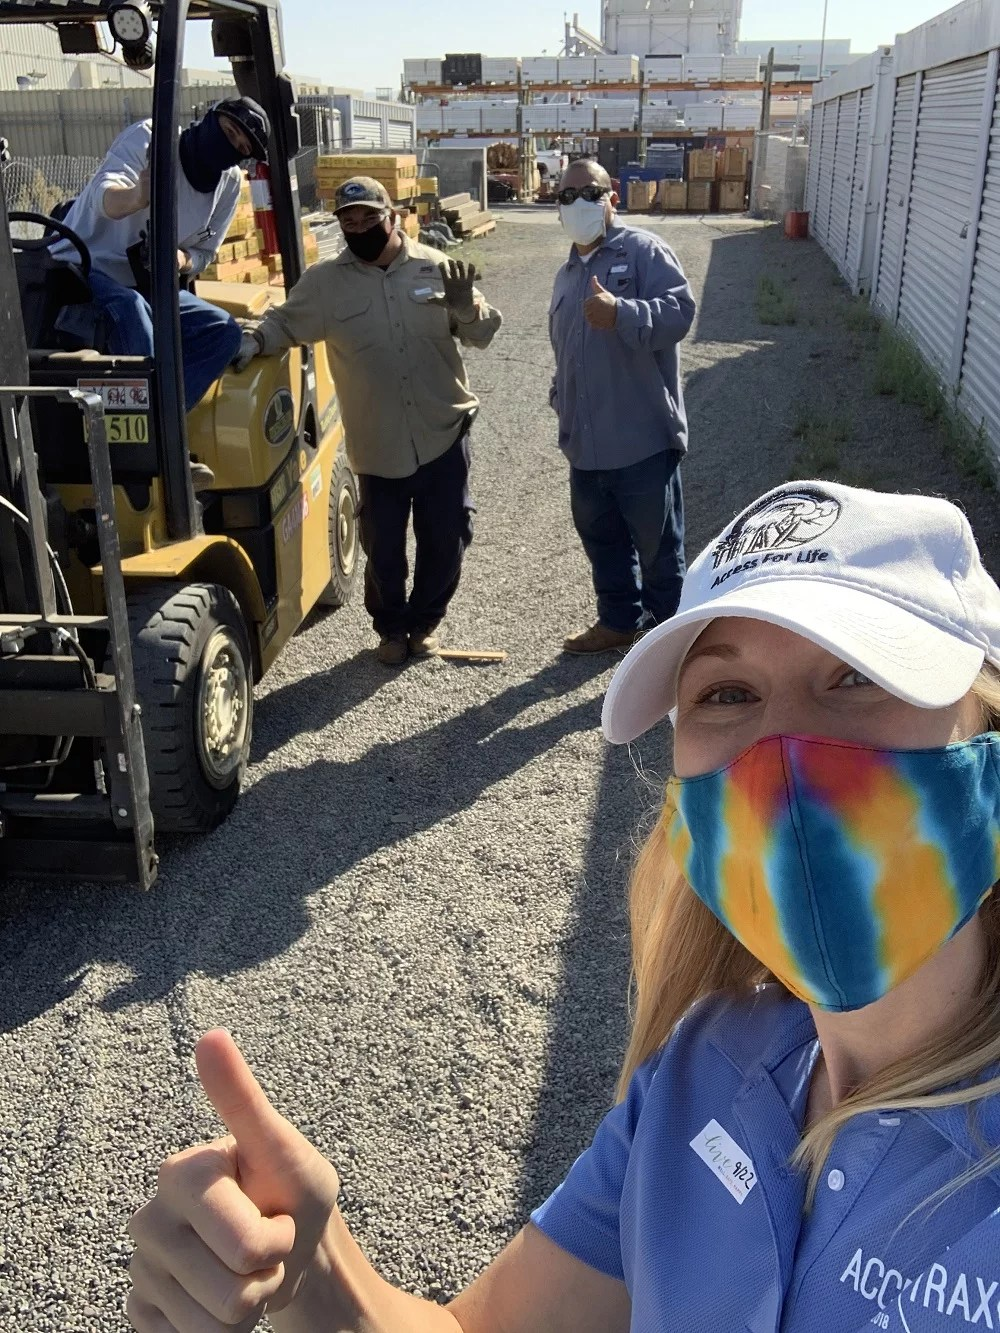 Image shows Kelly taking a selfie with 3 men who work for a local gas and electric company. They are standing by and in a forklift on loose gravel. They are all wearing face masks. Kelly is giving the thumbs up!